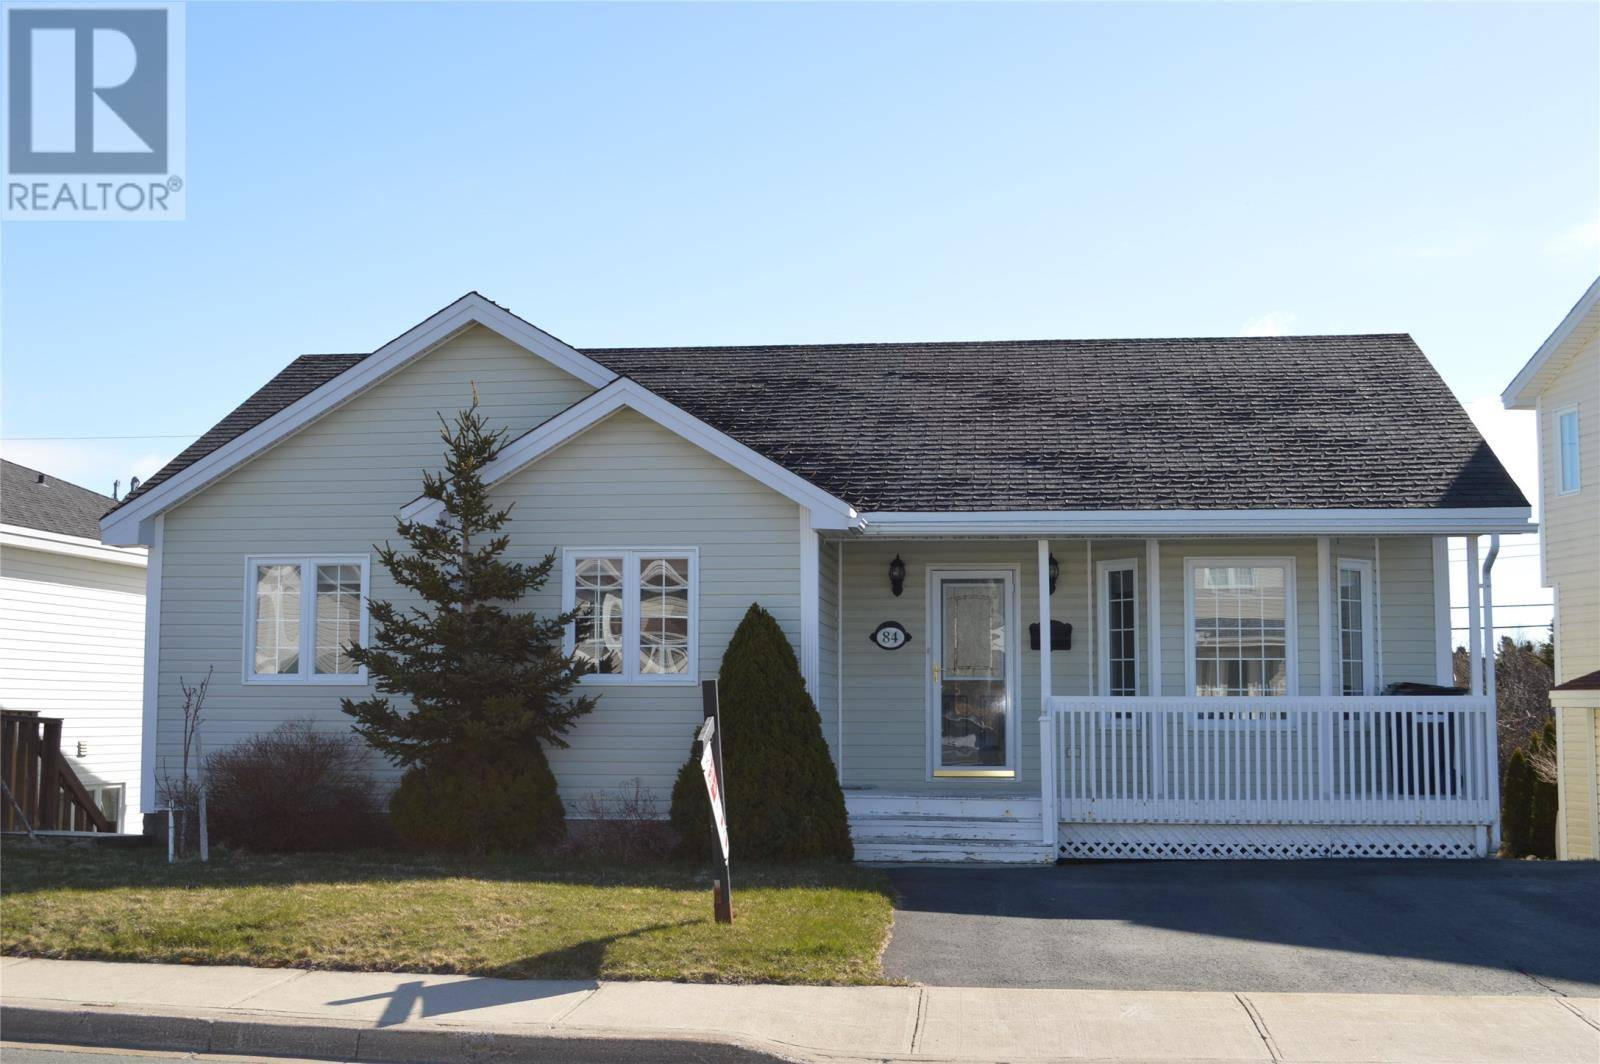 House for sale at 84 Penney Cres St. John's Newfoundland - MLS: 1207093